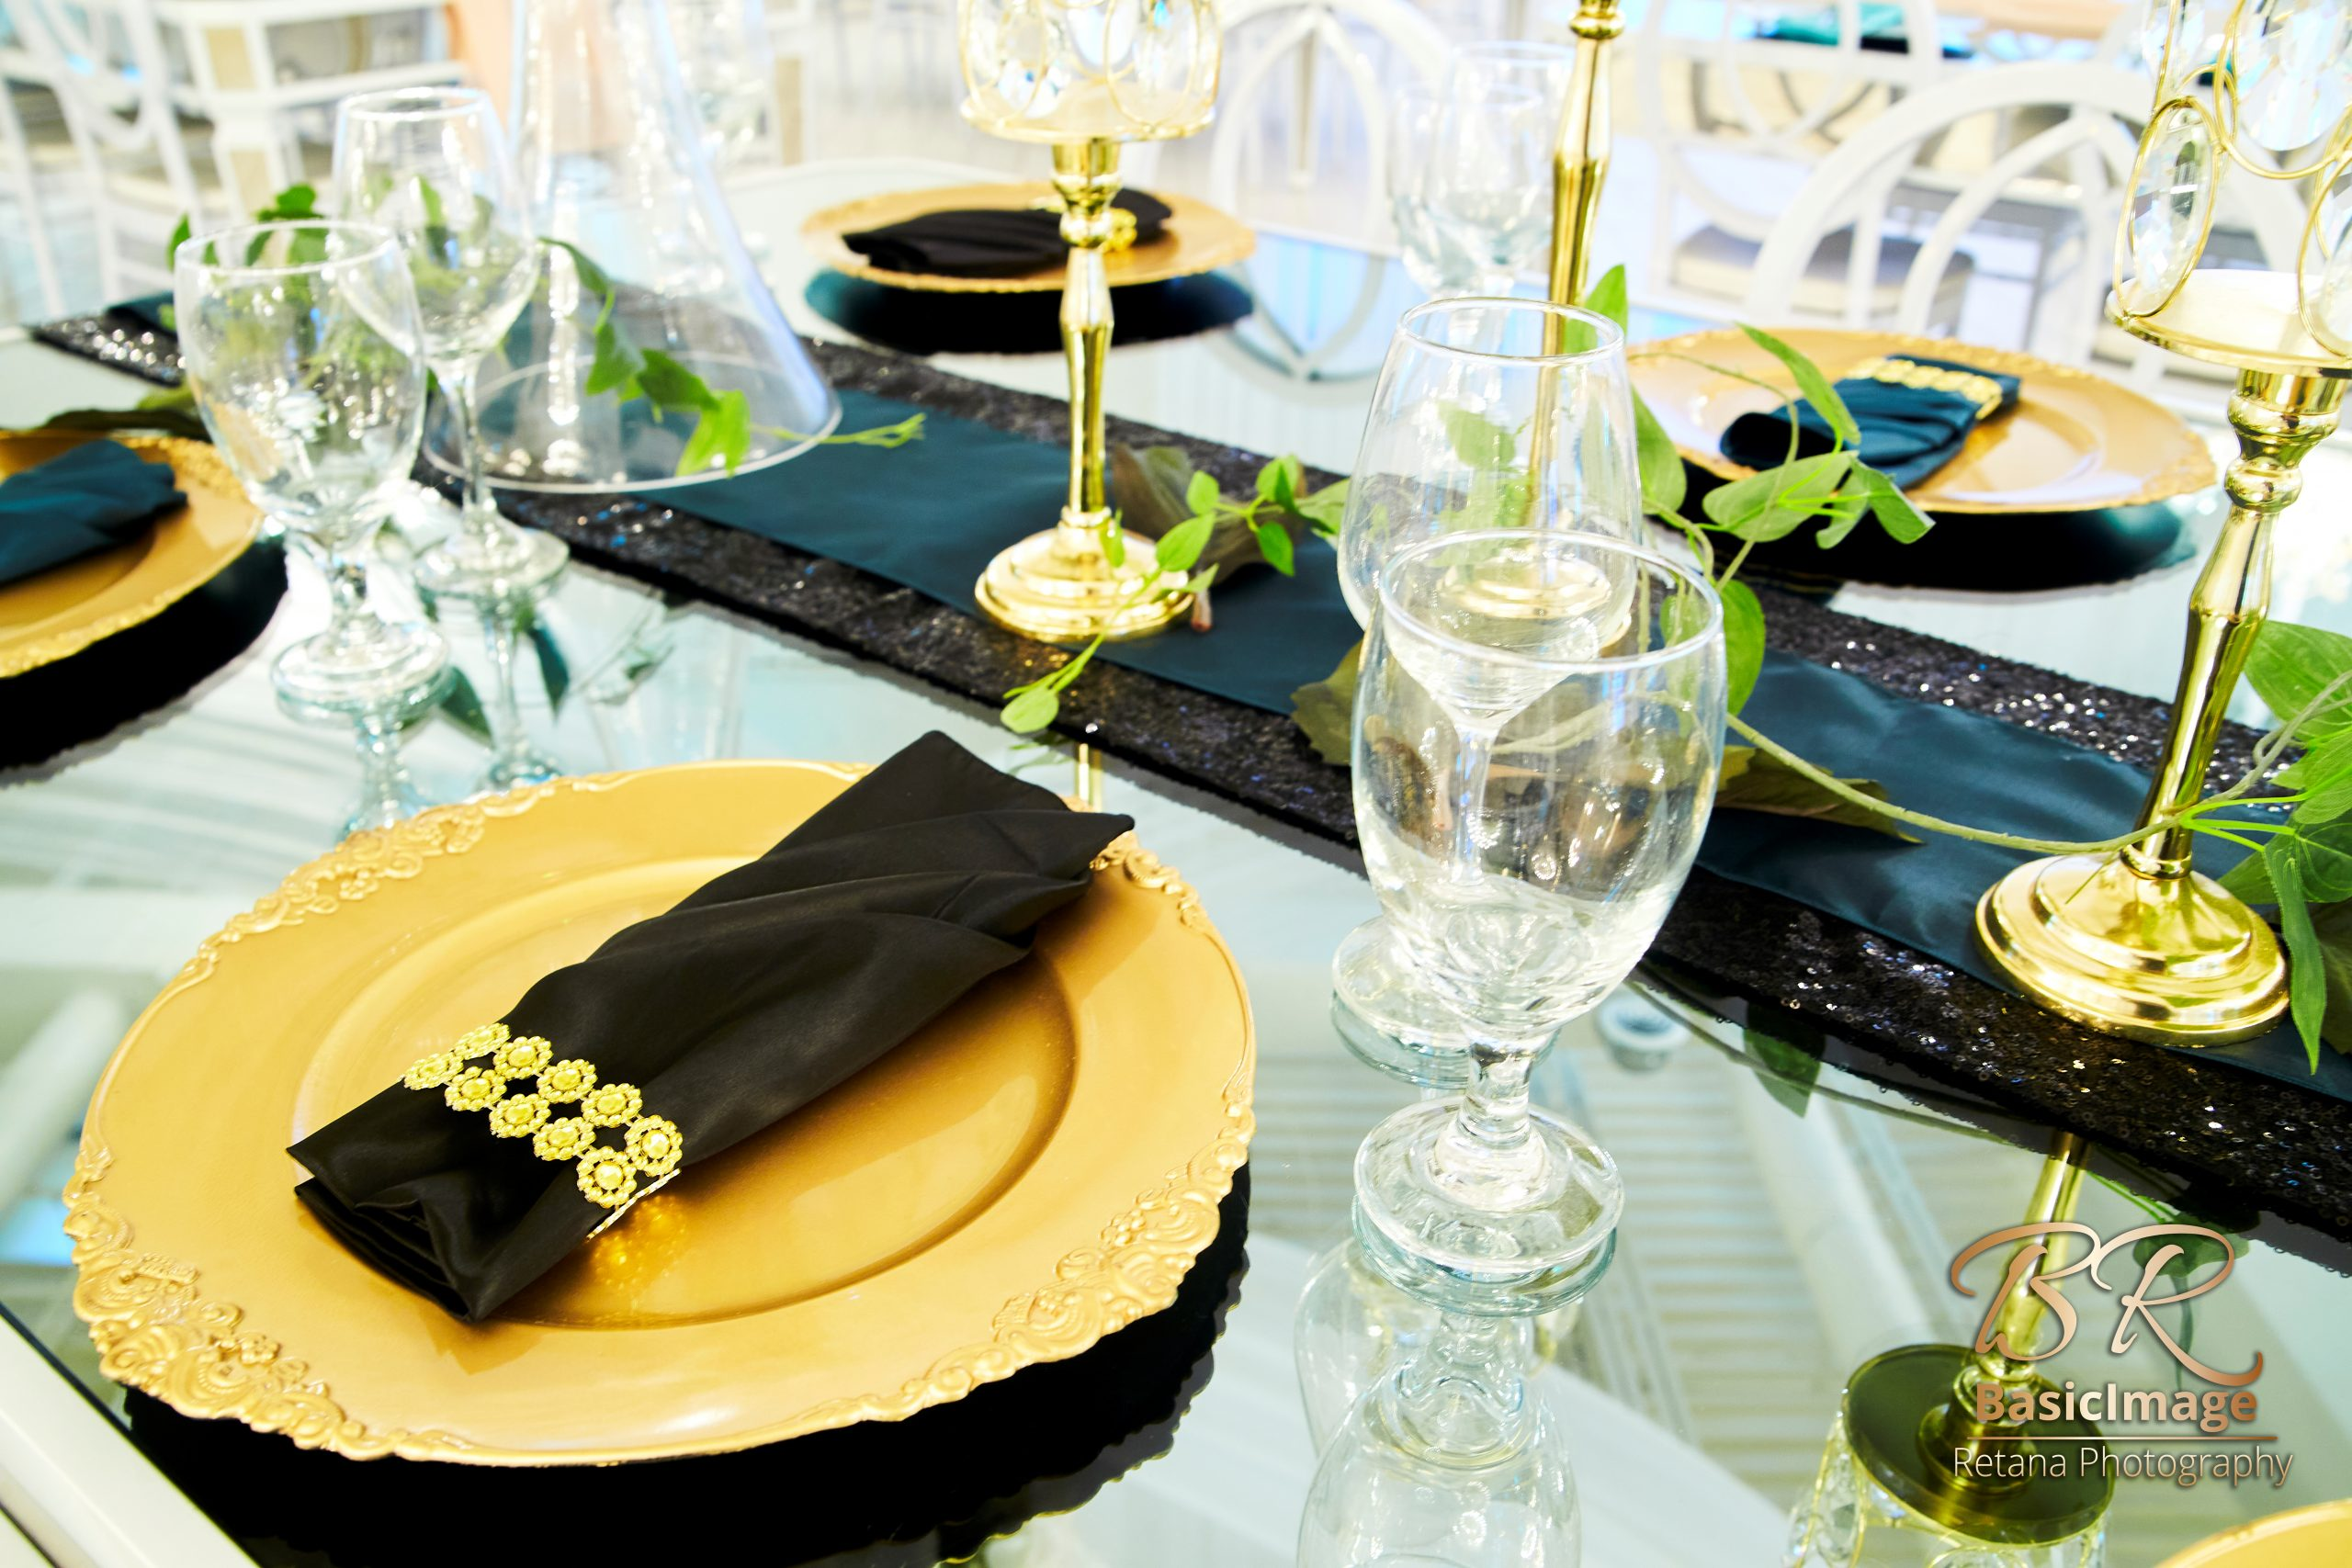 LeVenue dining and table decor. close up